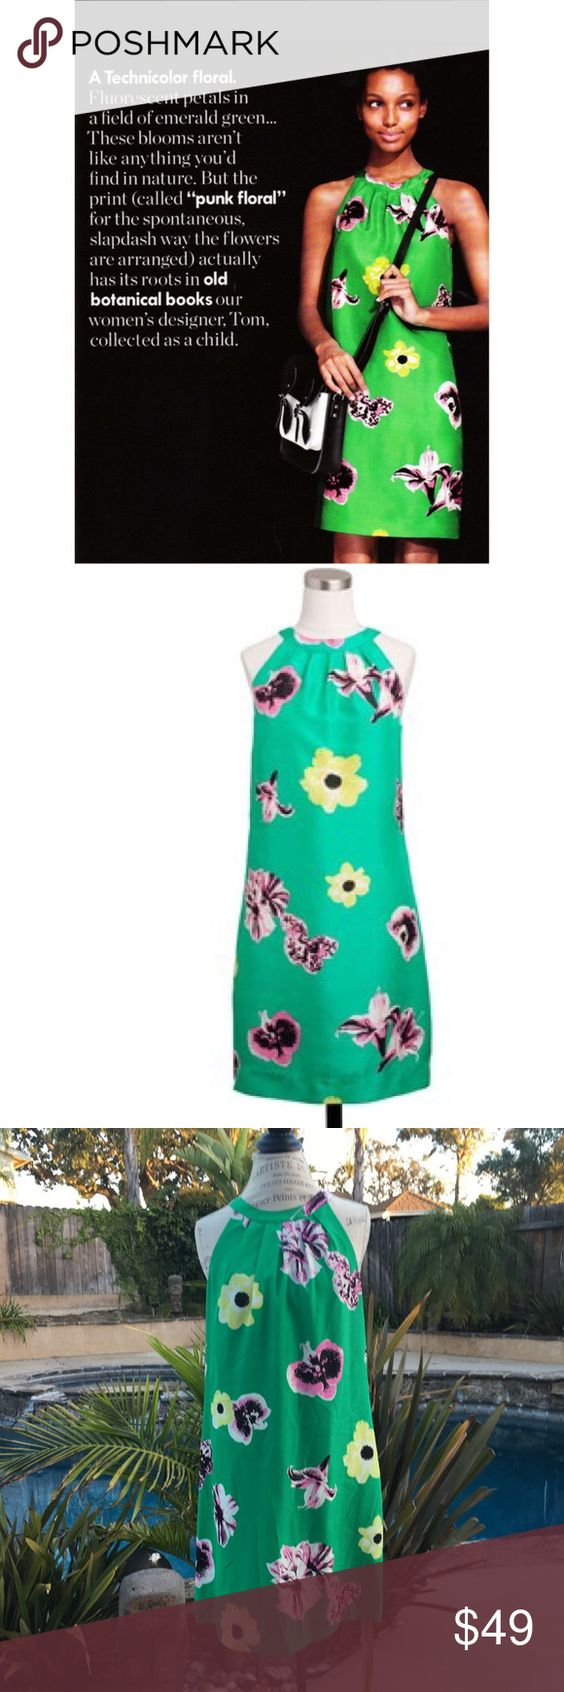 "J.Crew ""Punk Floral"" silk dress Bright green floral dress. Gorgeous colors and very flattering fit!  Euc J. Crew Dresses"